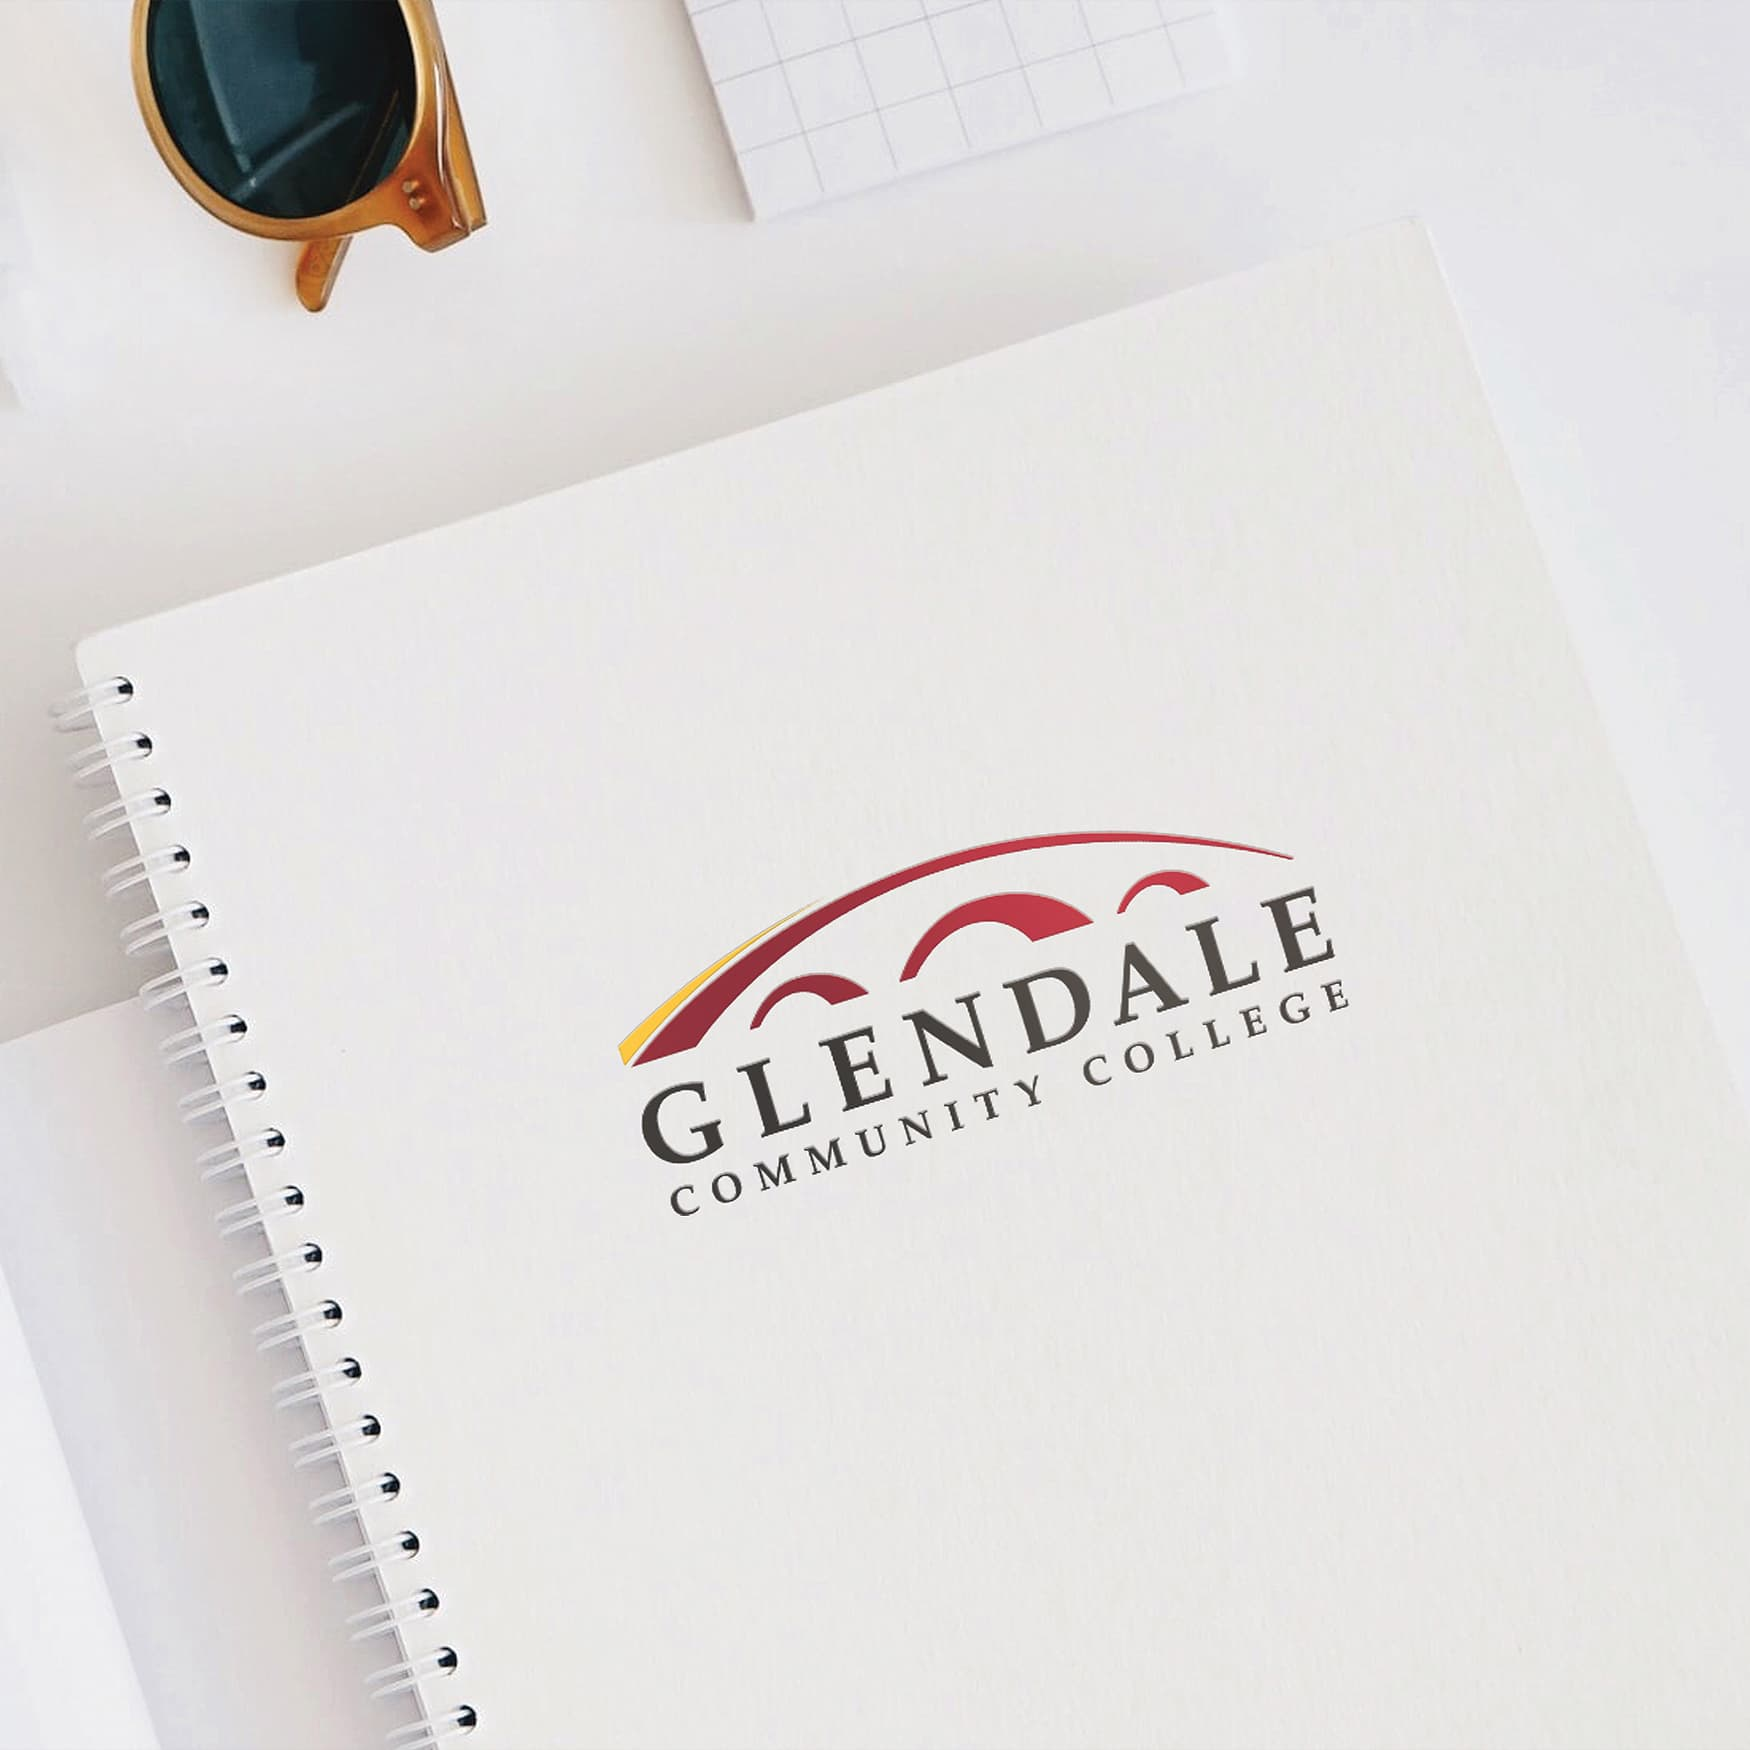 Glendale Community College logo embed on a white stationary notebook on top of a white desk.